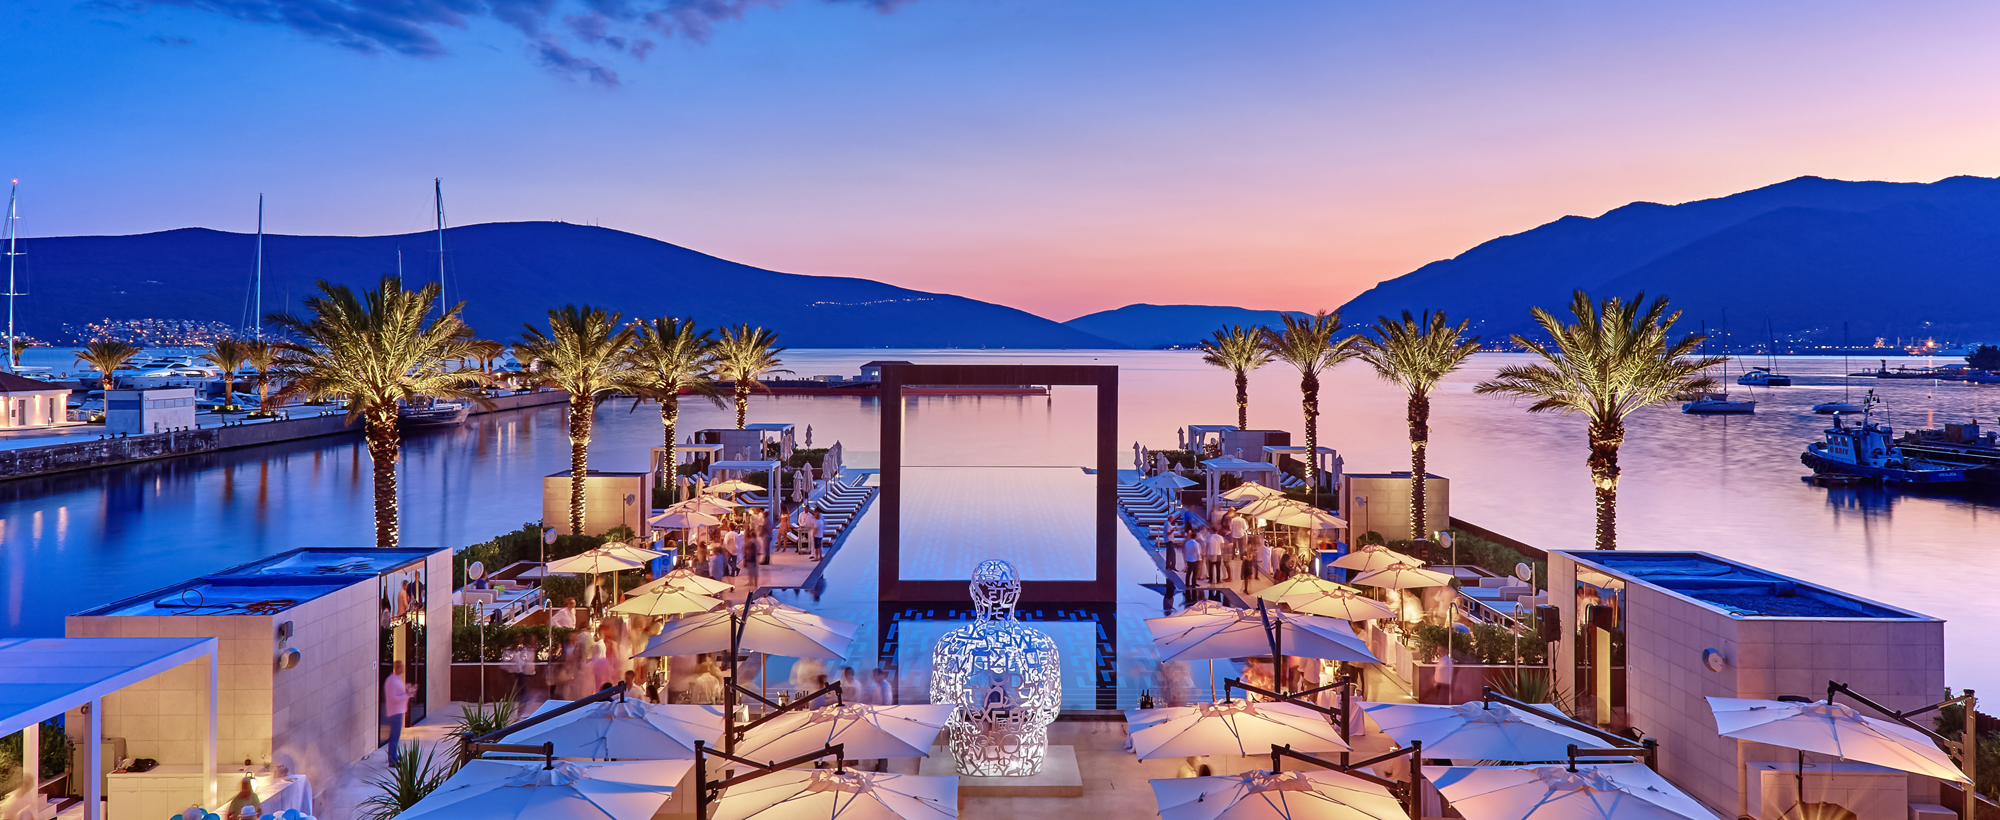 Porto Montenegro Tivat, Helicopter rent | SYMPHONY Ltd - The best Travel Management Company